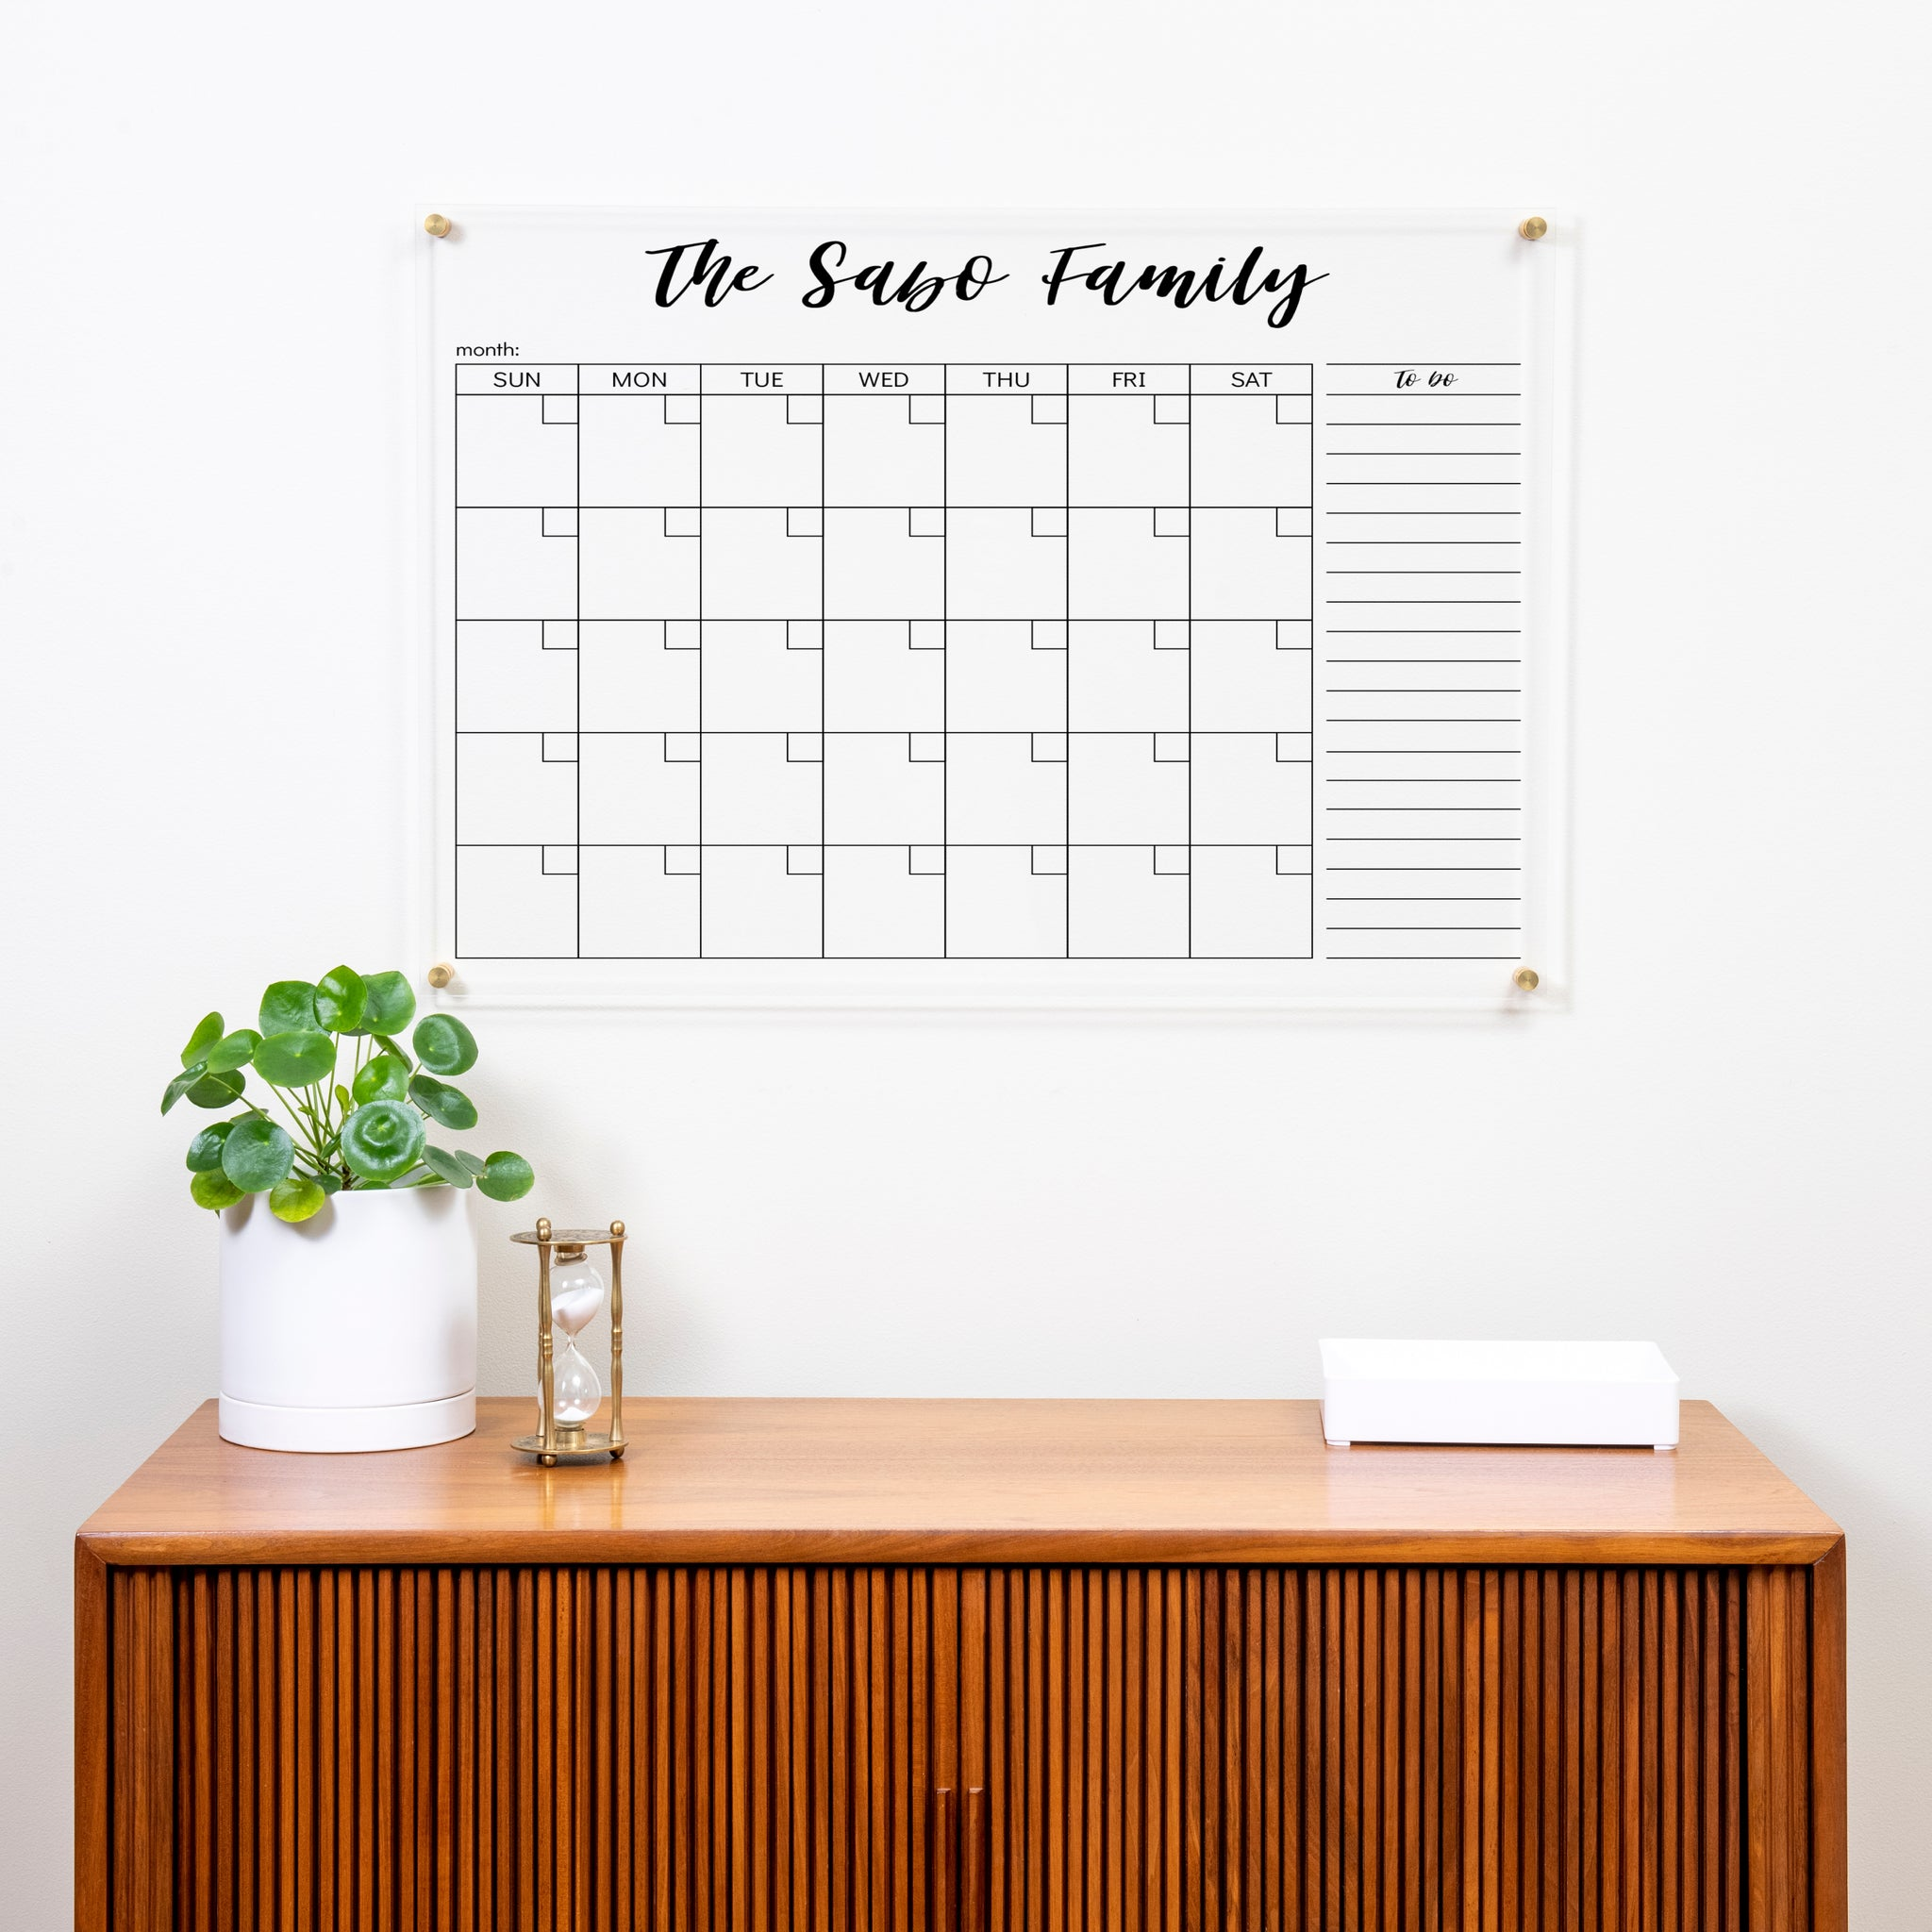 Personalized Acrylic Wall Calendar